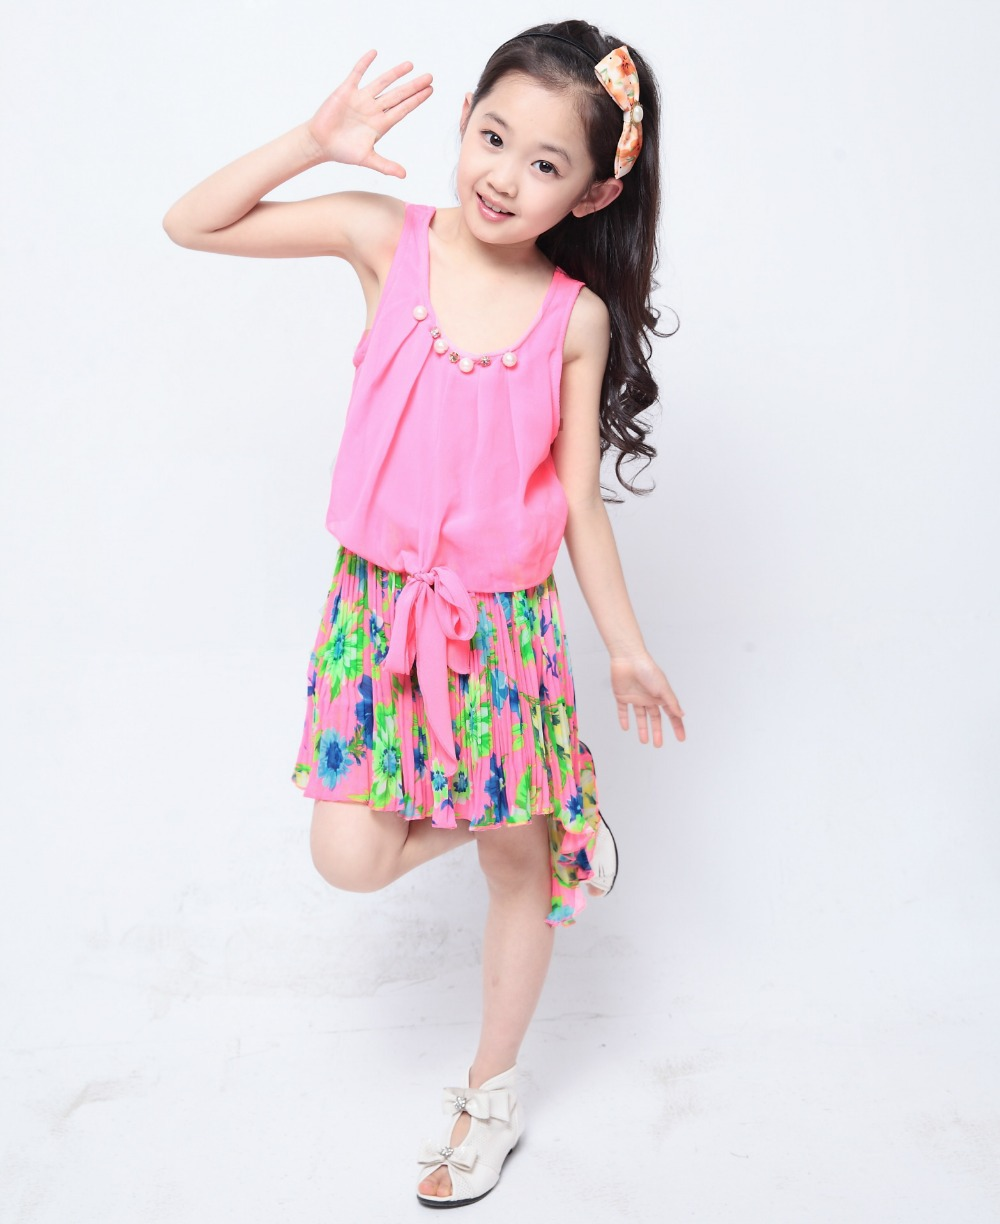 getson.ga is an online fashion wholesale marketplace that connects manufacturers and brands to retail buyers. We have the latest wholesale womens clothing, wholesale mens clothing, wholesale kids clothing, wholesale shoes, and wholesale accessories.